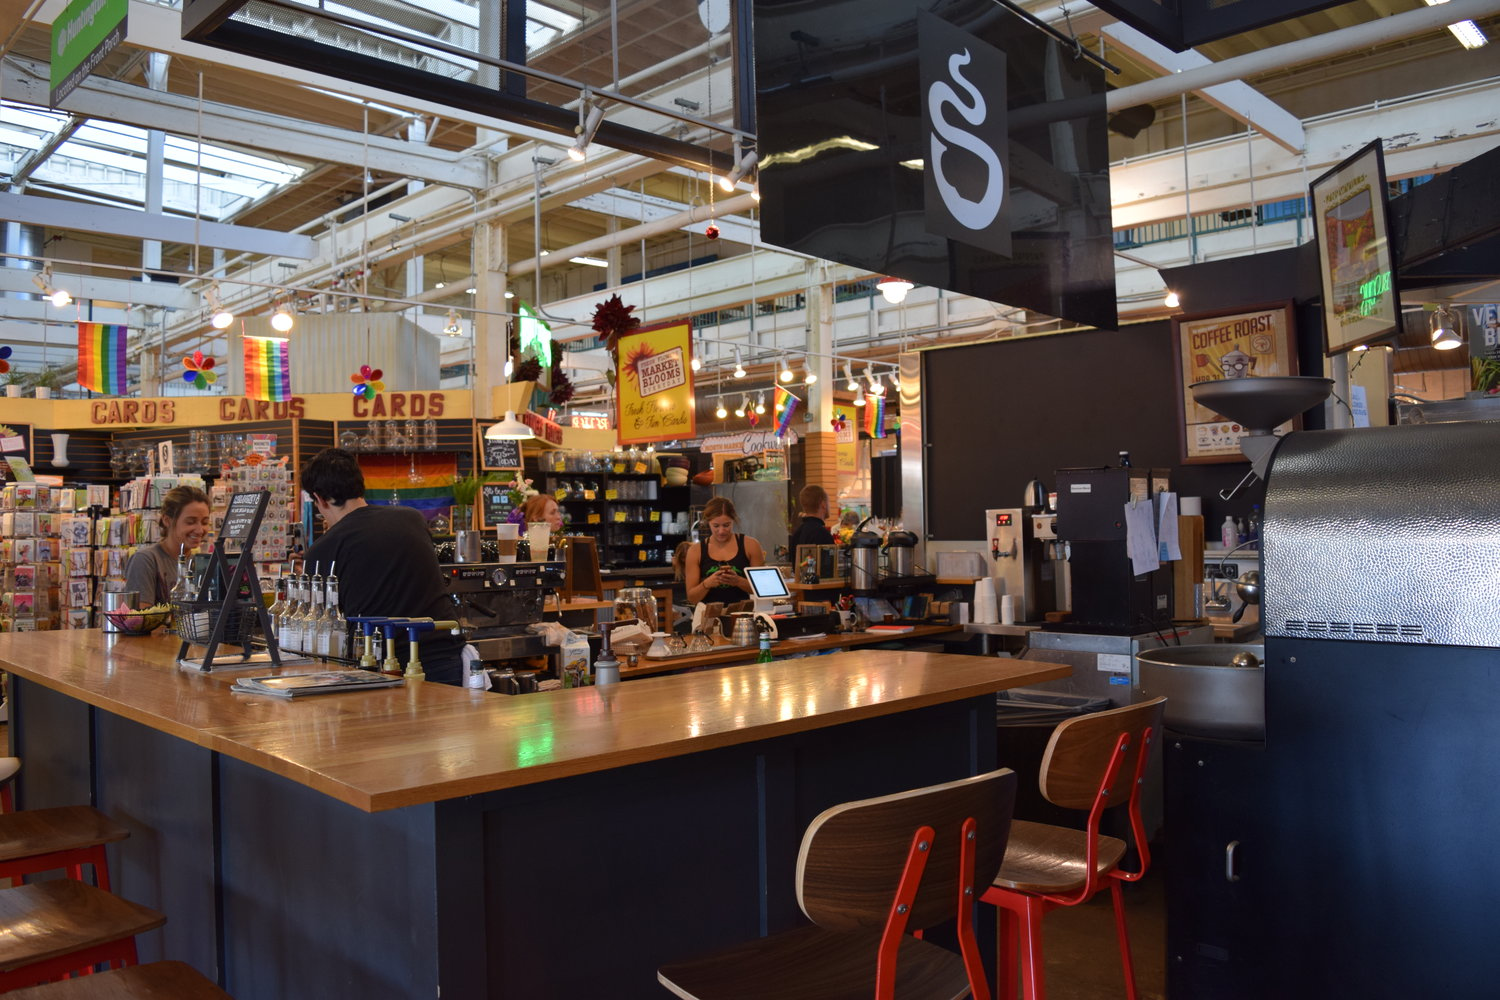 Bar-style kiosk with barista serving a customer, all inside a large public market